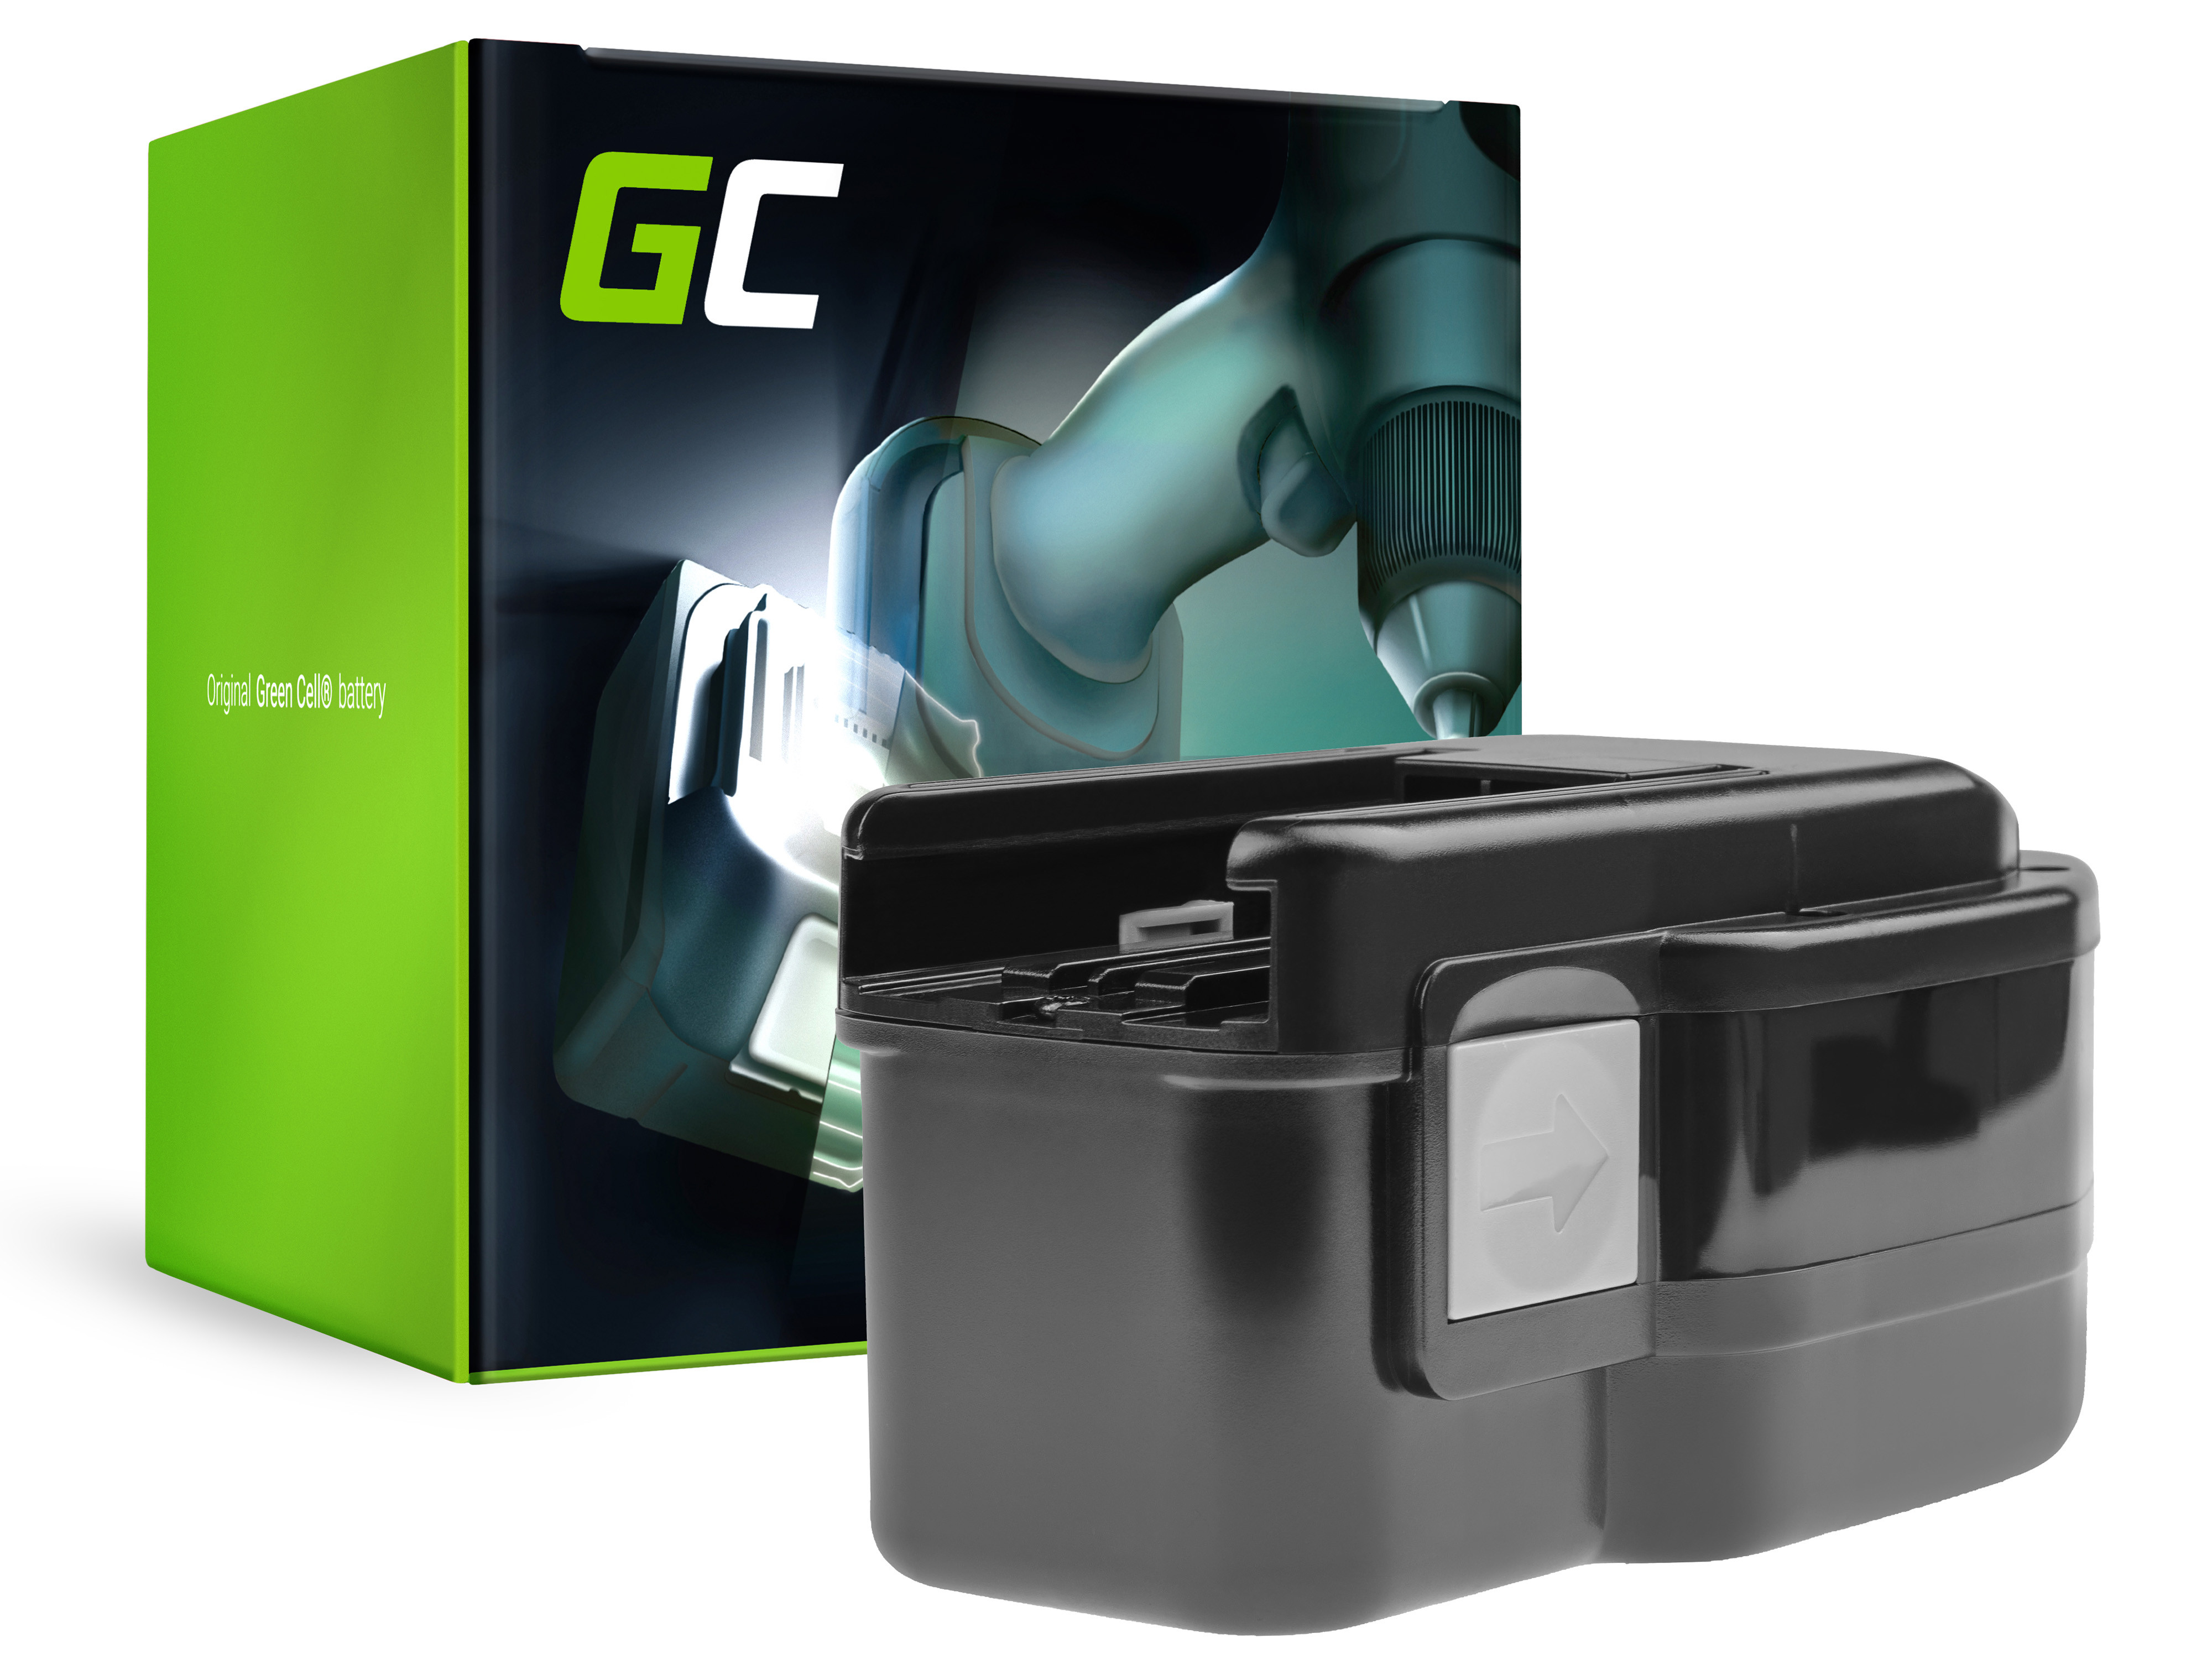 Green Cell Power Tool Battery 48-11-2320 for Milwaukee PES PIW PSH PSX PWS 18 Loktor H P S 18 AEG B18 BBM BDSE BXL BSX 18